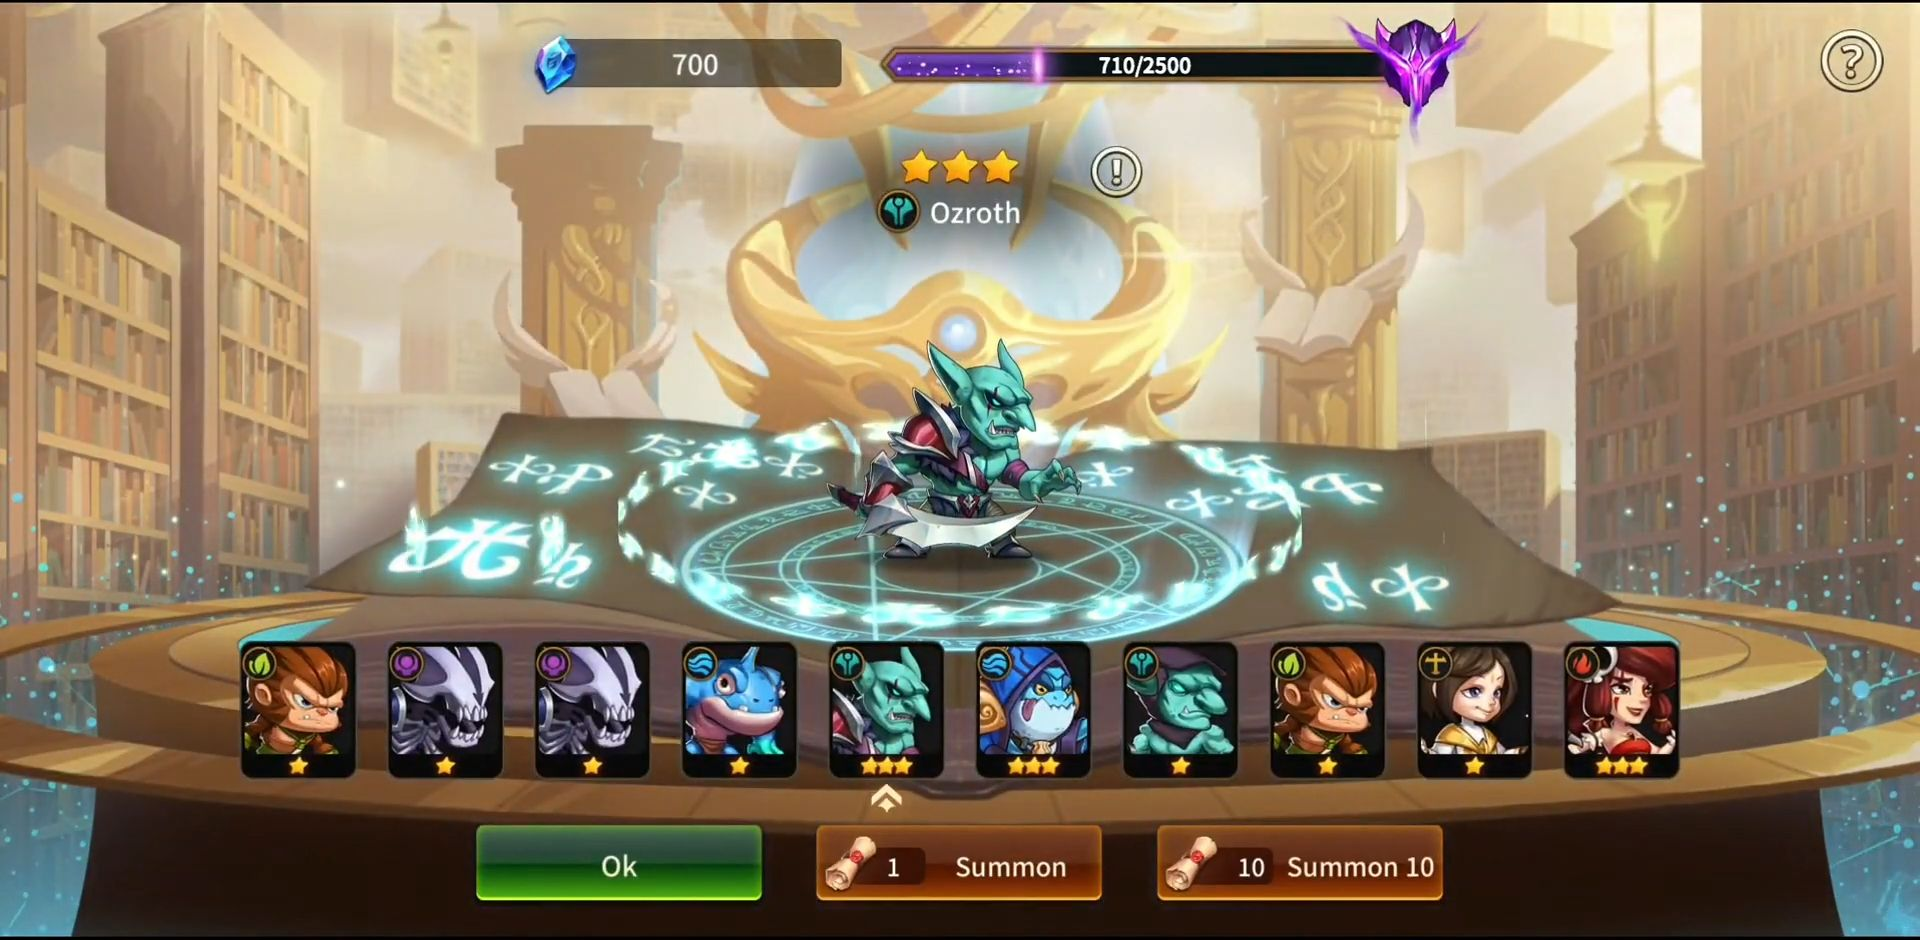 Summoners Era - Arena of Heroes capture d'écran 1